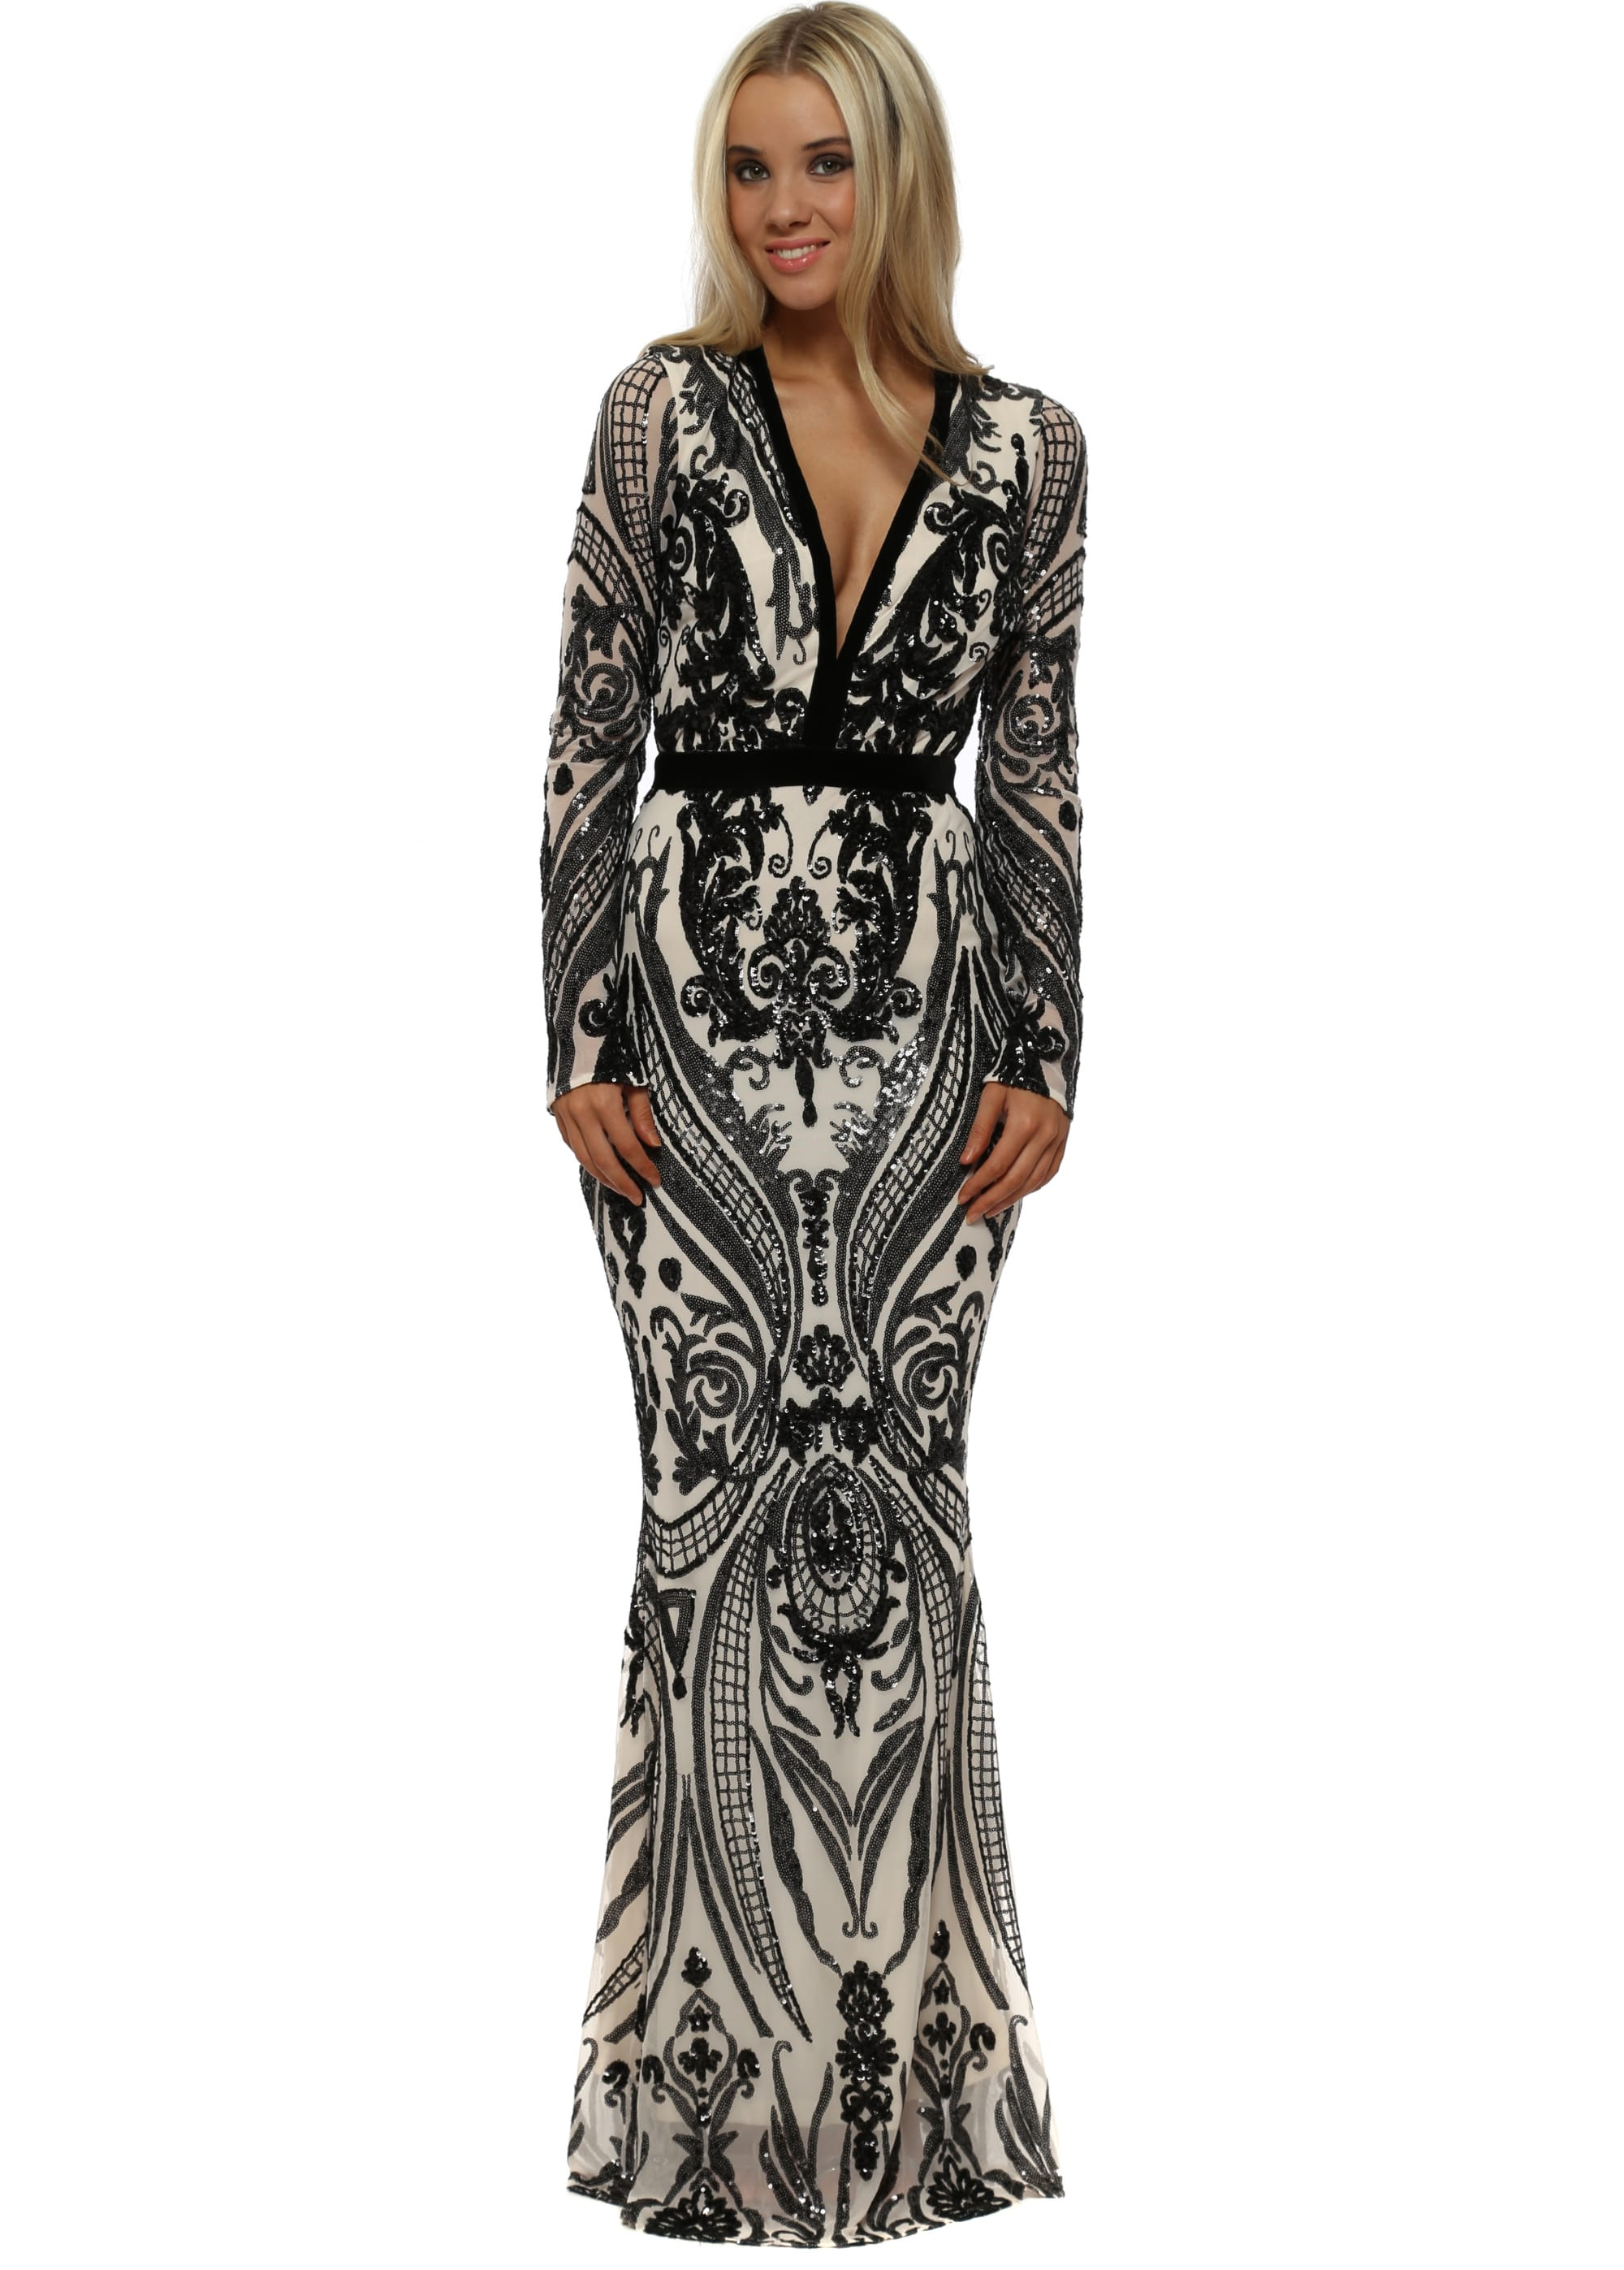 Stephanie Pratt Plunge Front Sequin Maxi Dress